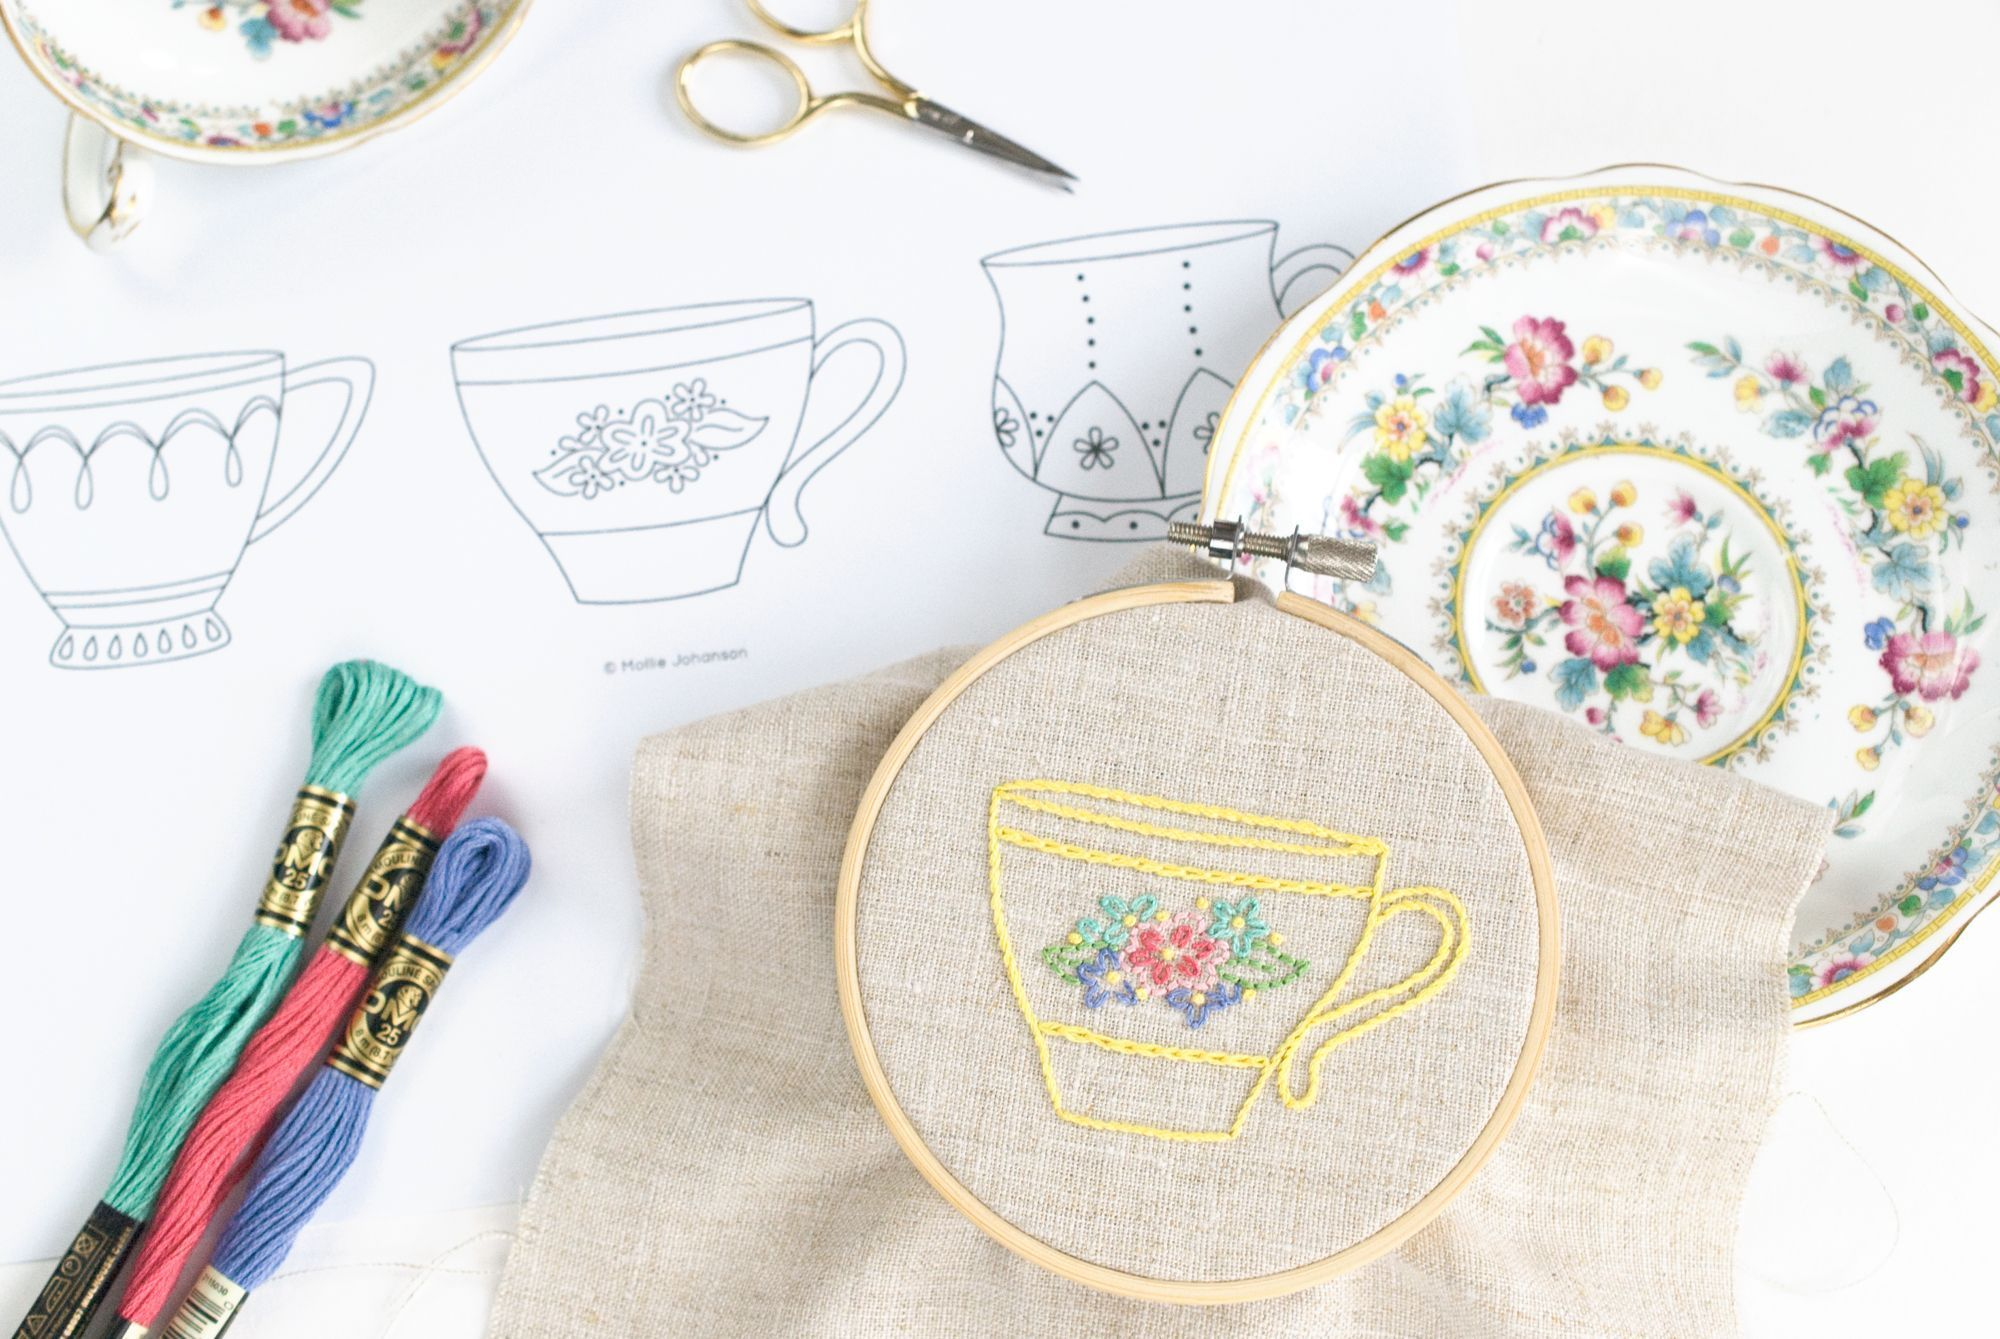 It's tea time with this free set of three teacup embroidery patterns. They're perfect for stitching simple gifts!